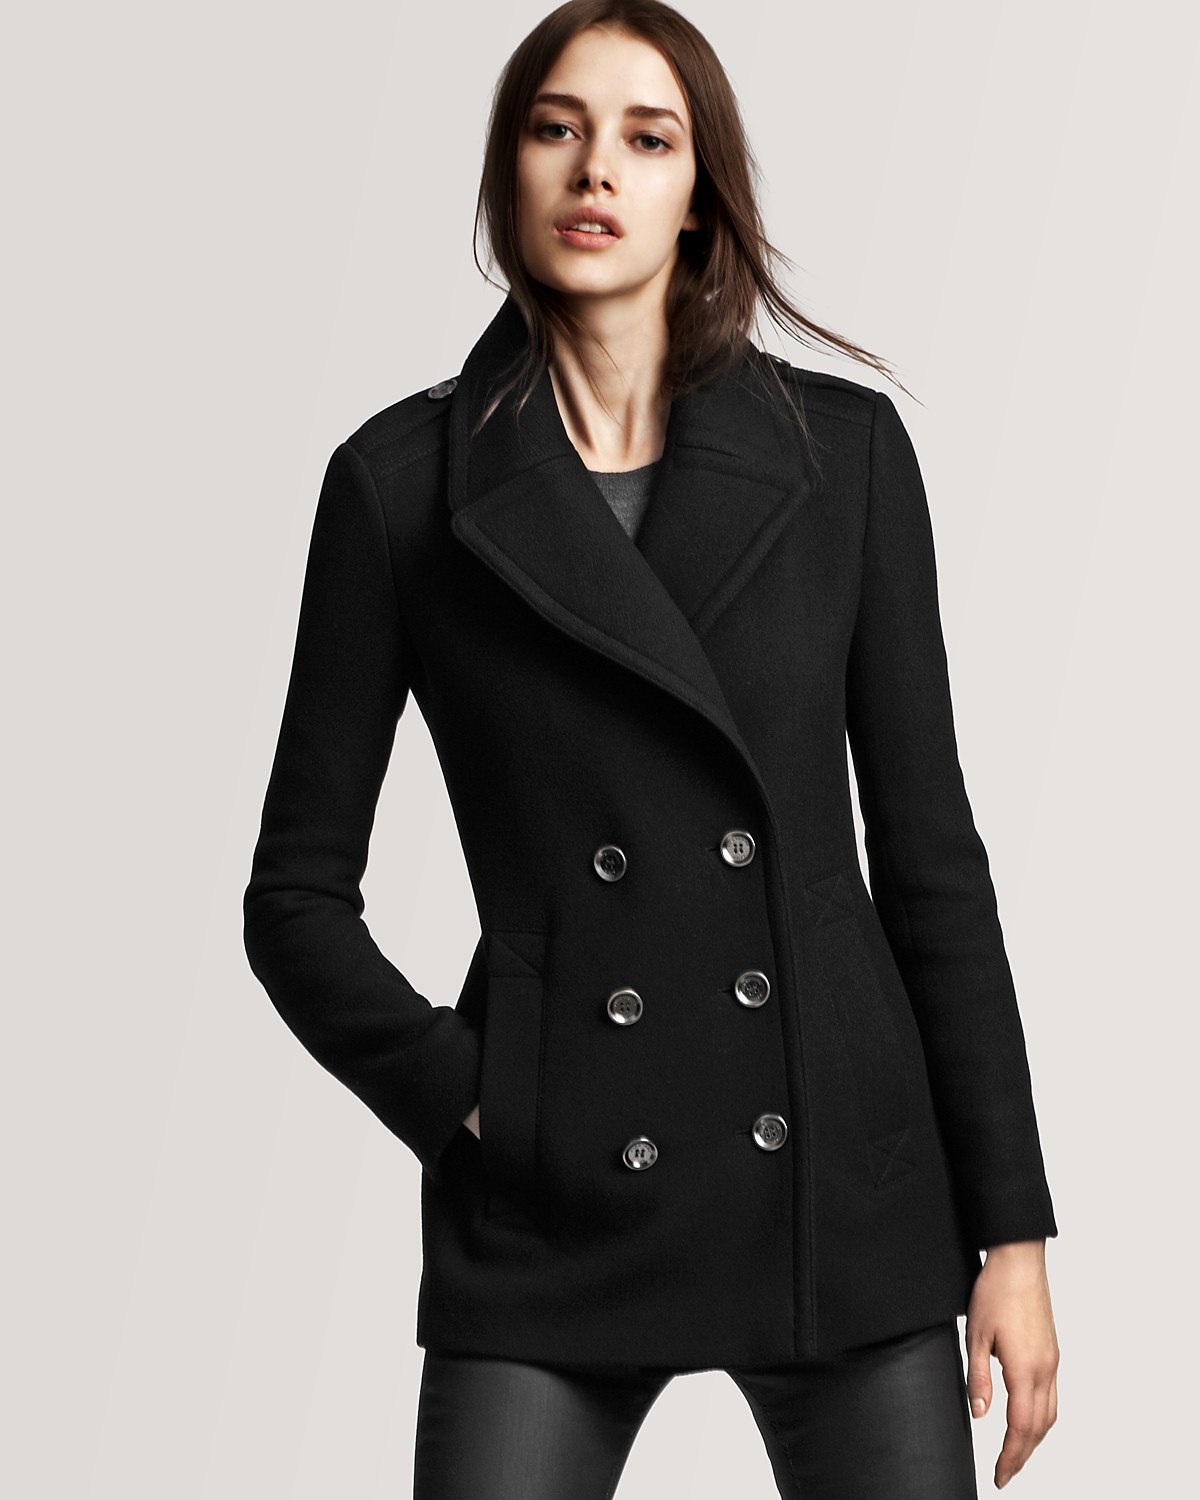 Shop for Women's Wool Pea Coats at trueiupnbp.gq Eligible for free shipping and free returns.